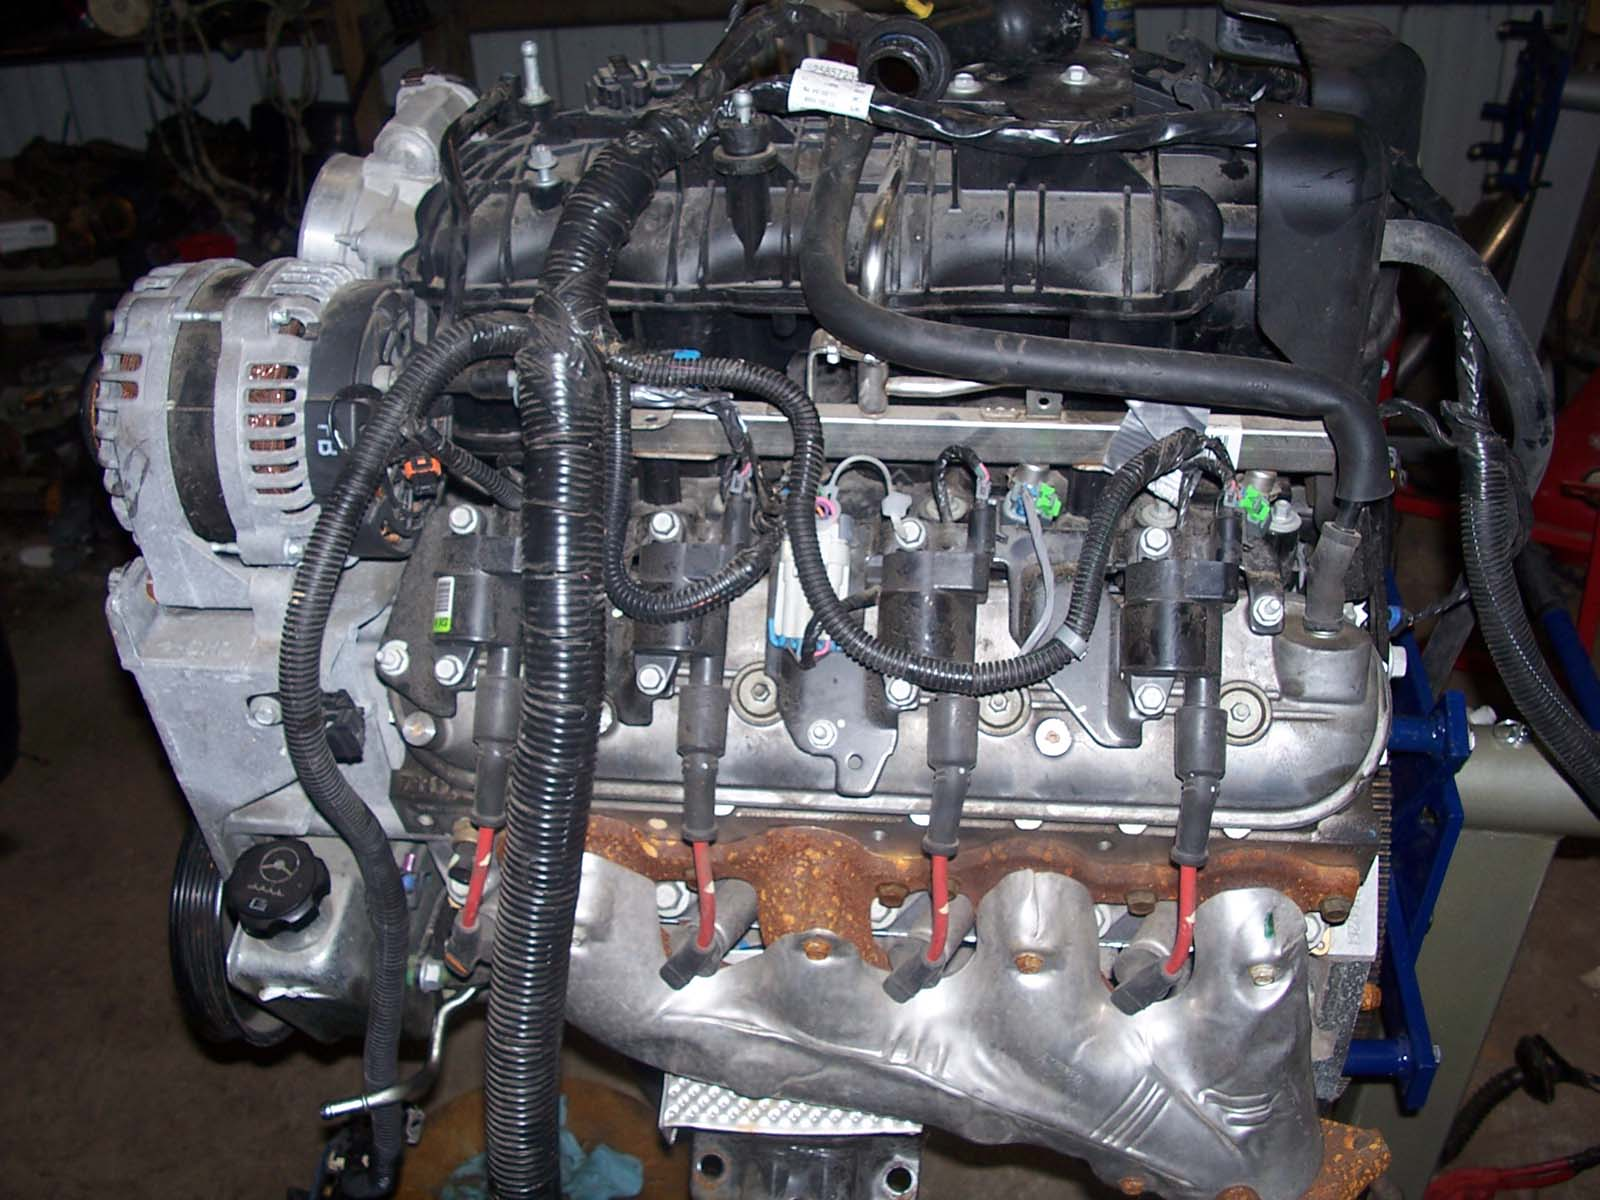 hight resolution of vlom valve lifter oil manifold this is for active fuel management or dod as some call it